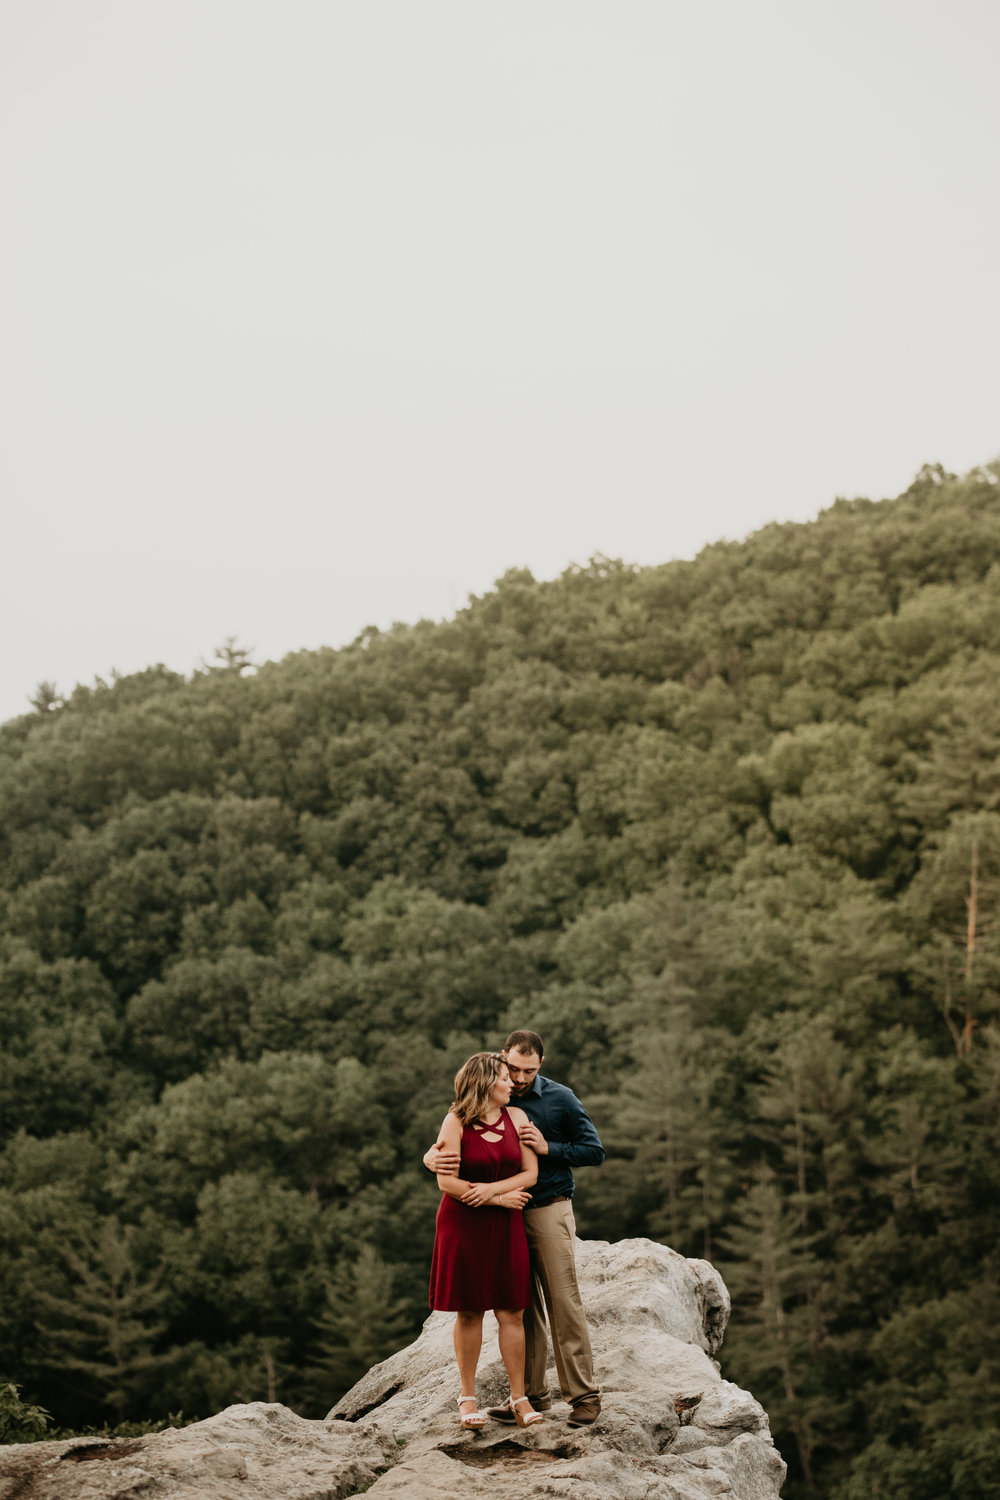 Nicole-Daacke-Photography-rock-state-park-overlook-king-queen-seat-maryland-hiking-adventure-engagement-session-photos-portraits-summer-bel-air-dog-engagement-session-23.jpg